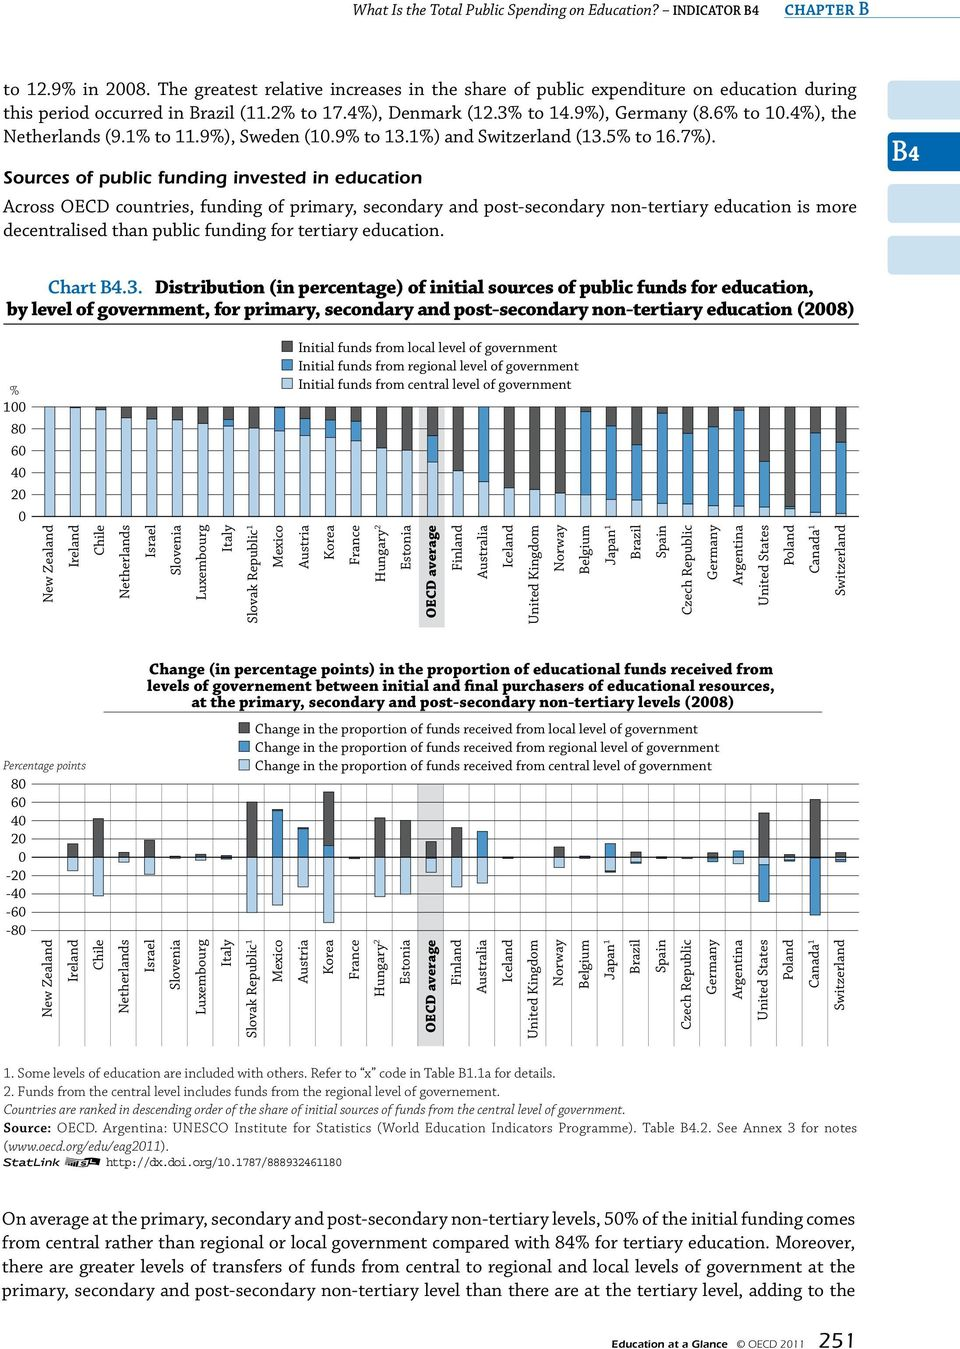 Sources of public funding invested in Across OECD countries, funding of primary, secondary and post-secondary non-tertiary is more decentralised than public funding for tertiary. Chart.3.